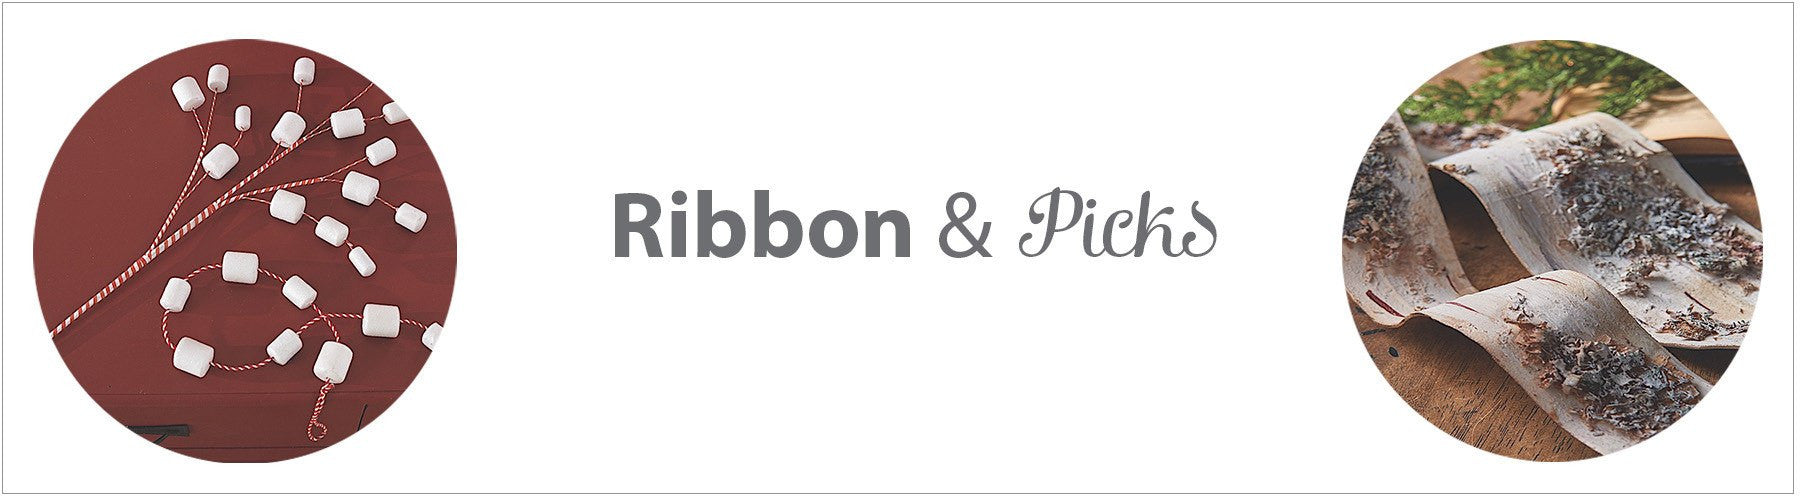 Ribbon & Picks